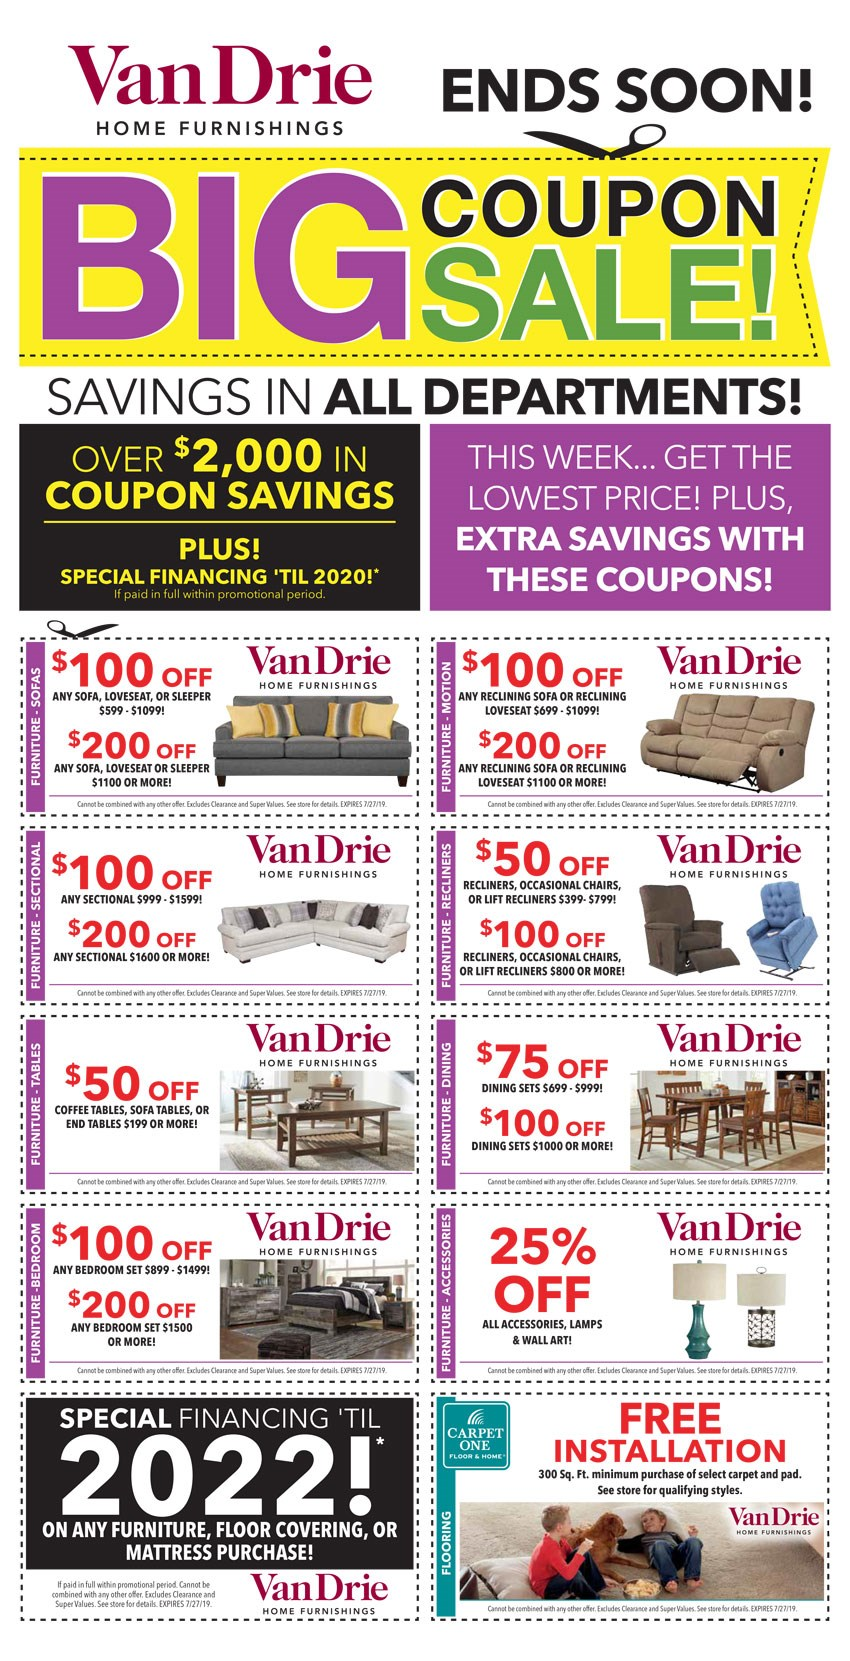 Coupon Page 1